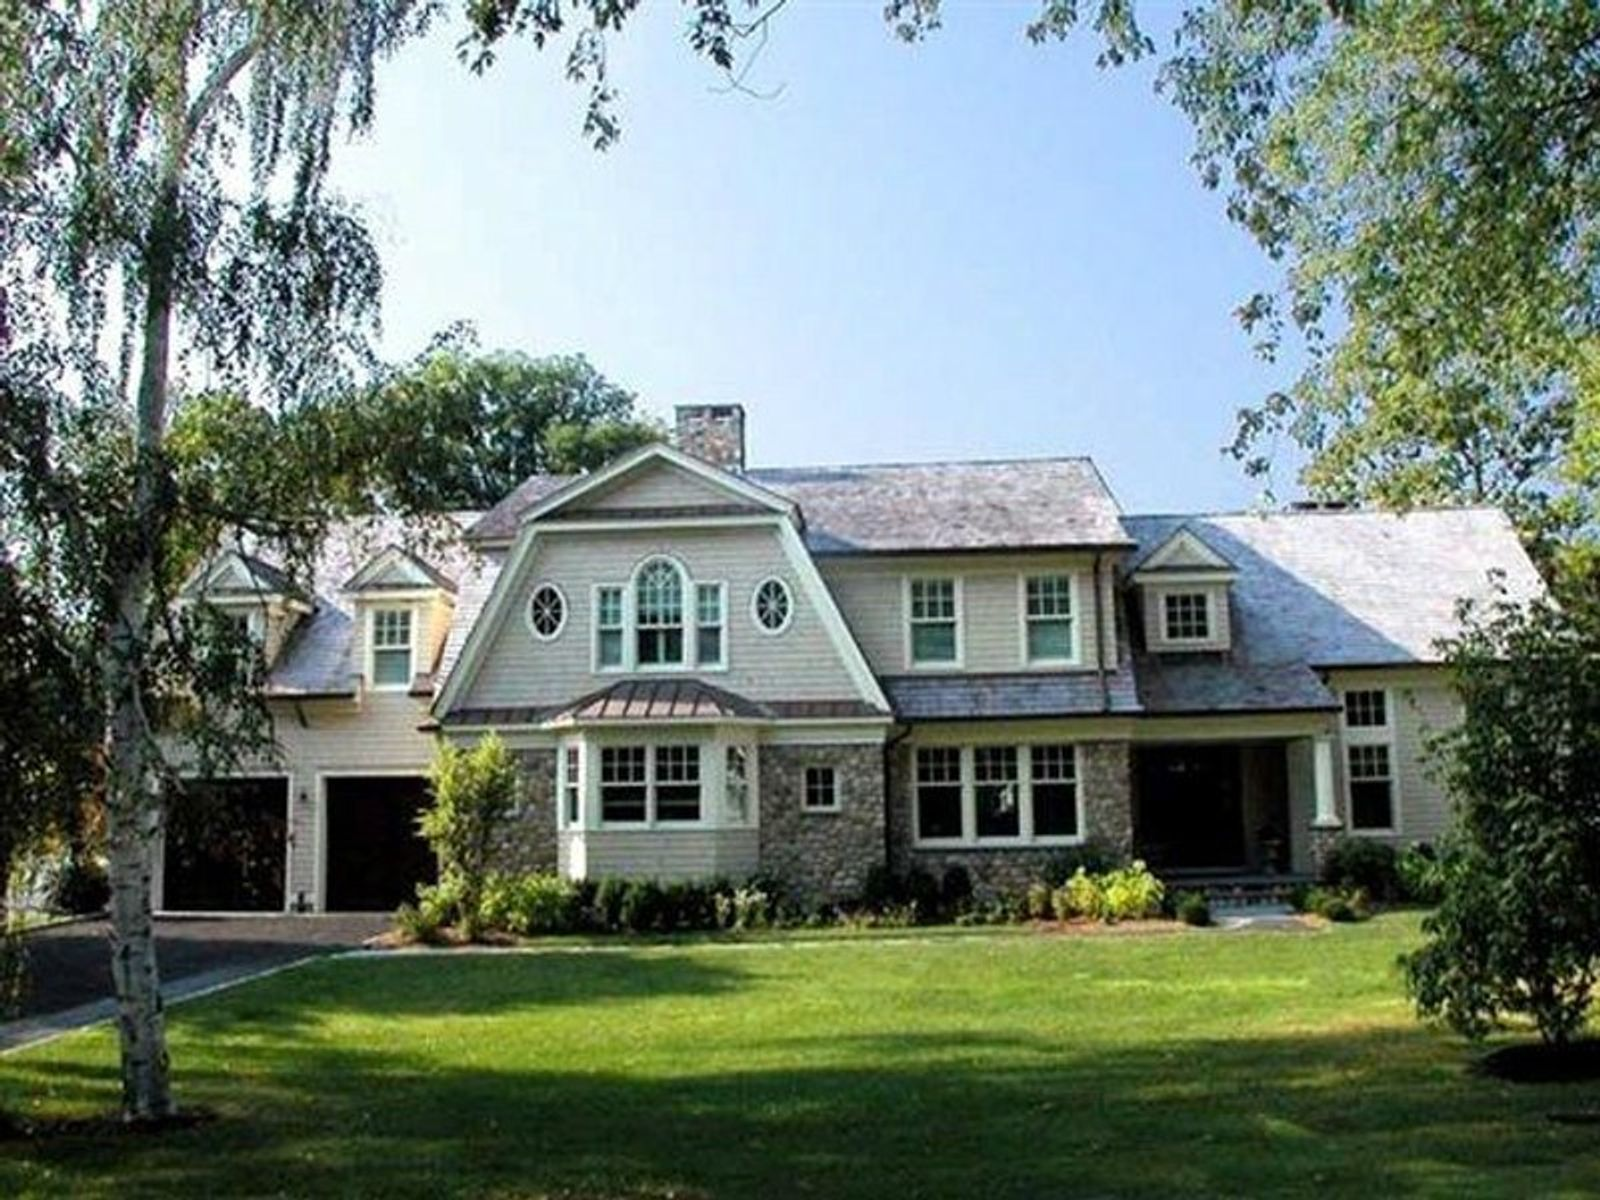 Old Greenwich Colonial, Old Greenwich CT Single Family Home - Greenwich Real Estate